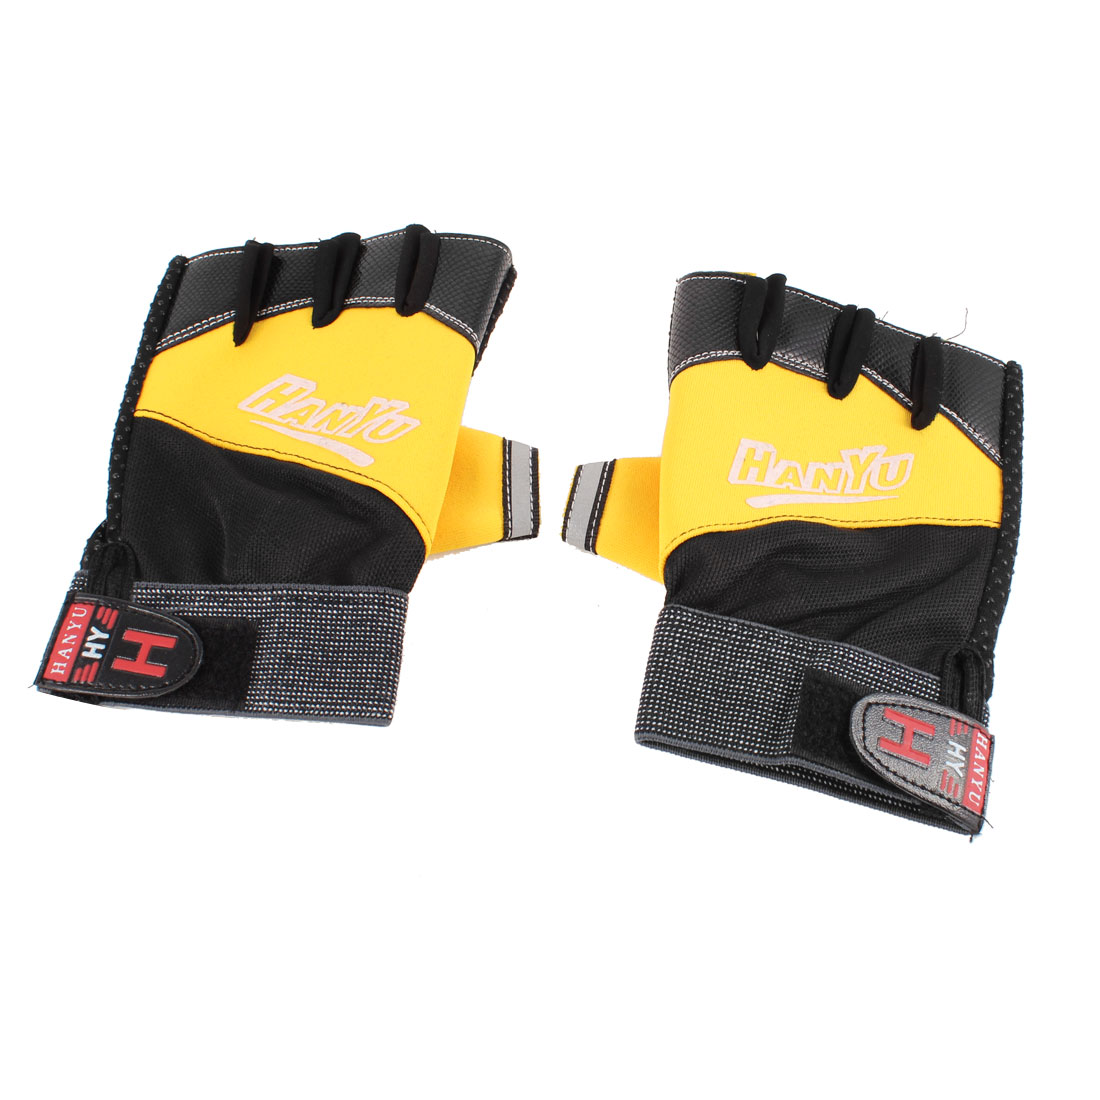 2 Pair Men Black Yellow Hook Loop Closure Fingerless Sports Gloves